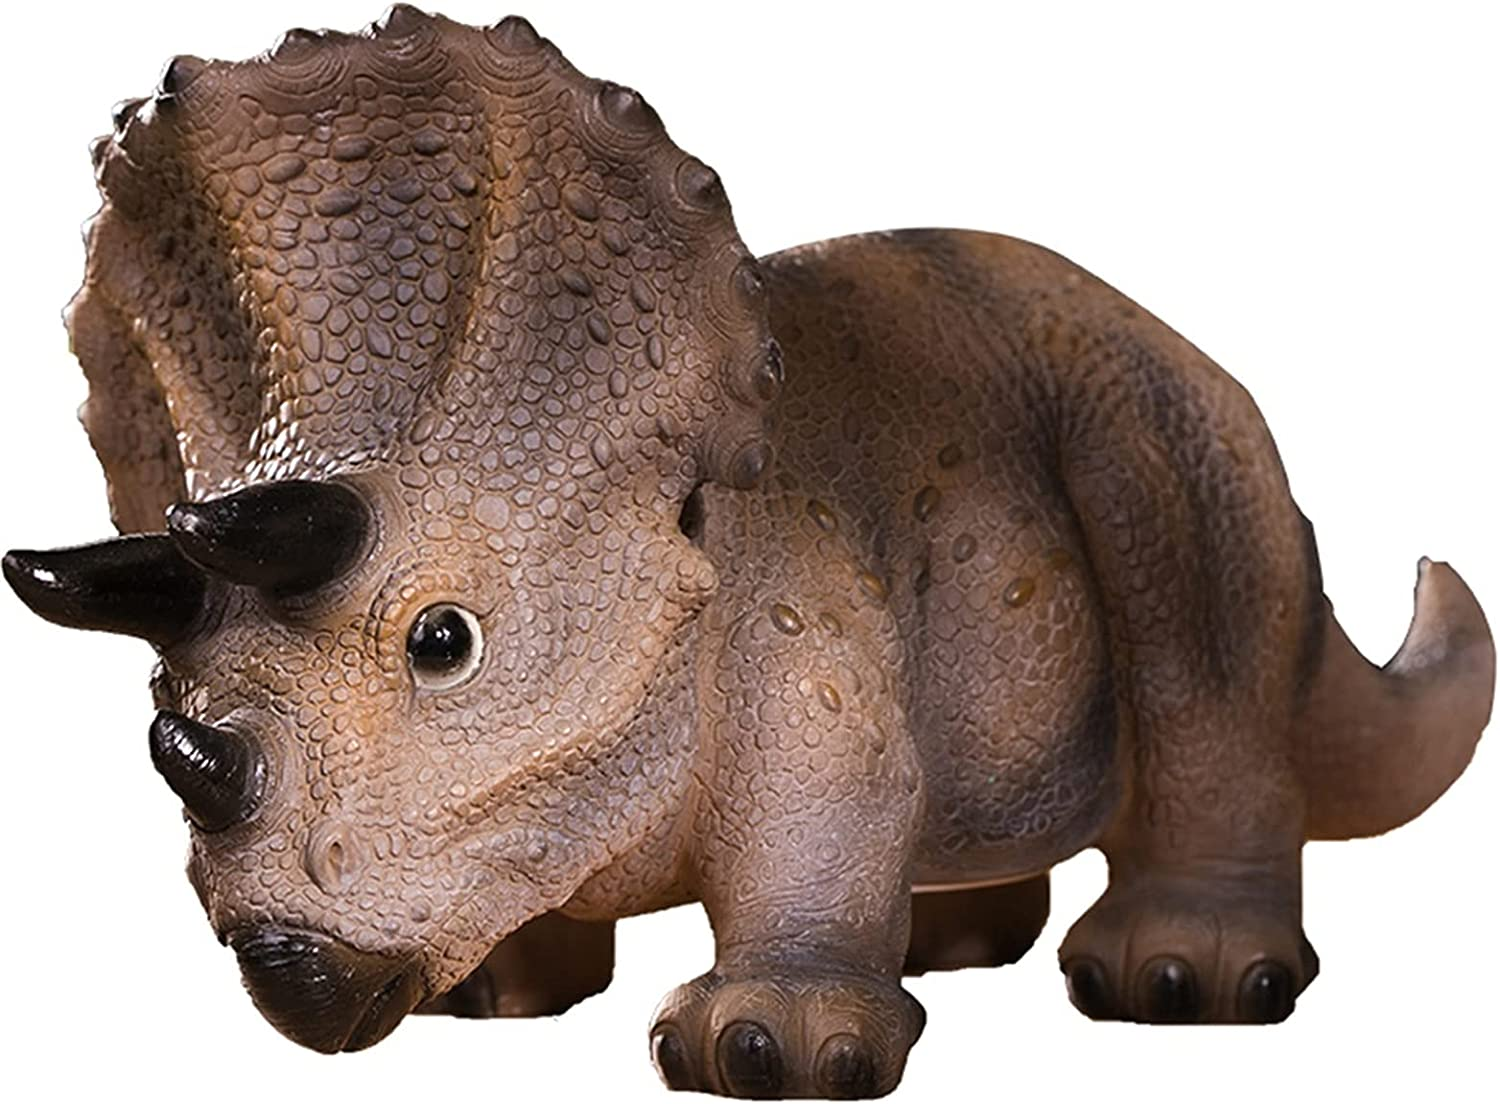 Lucky Decorative Ornaments Gift Max 72% OFF Dinosaur Resin Large Piggy famous Bank